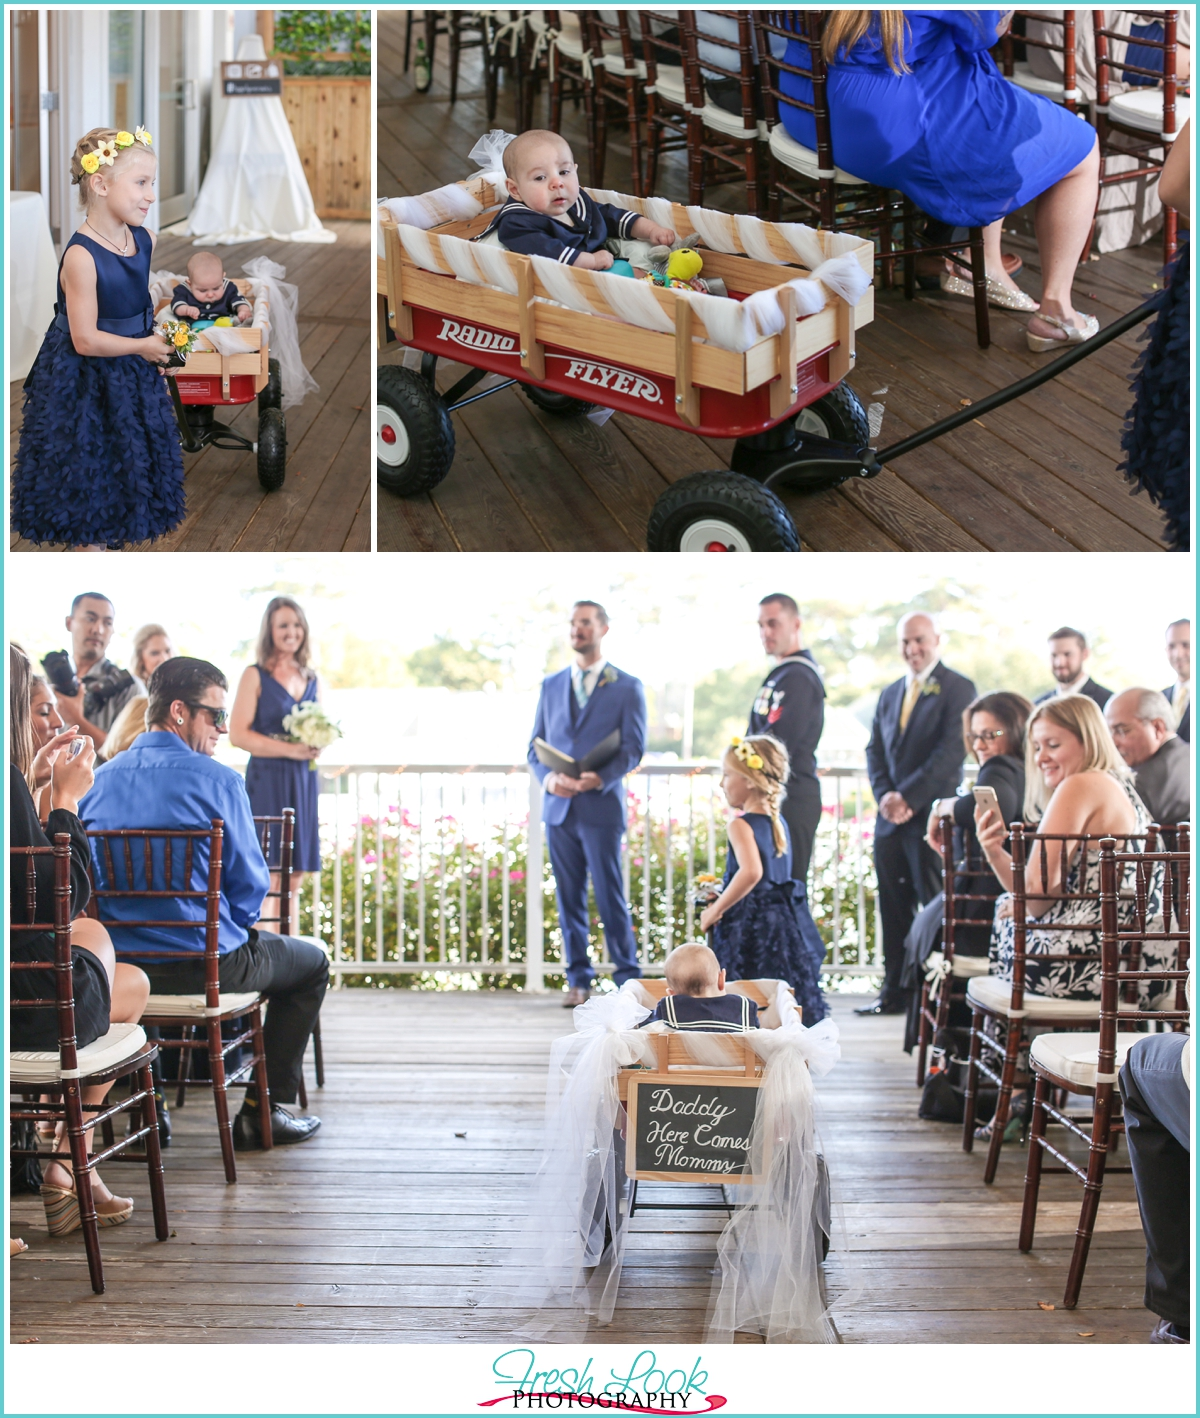 baby in a wagon at wedding ceremony